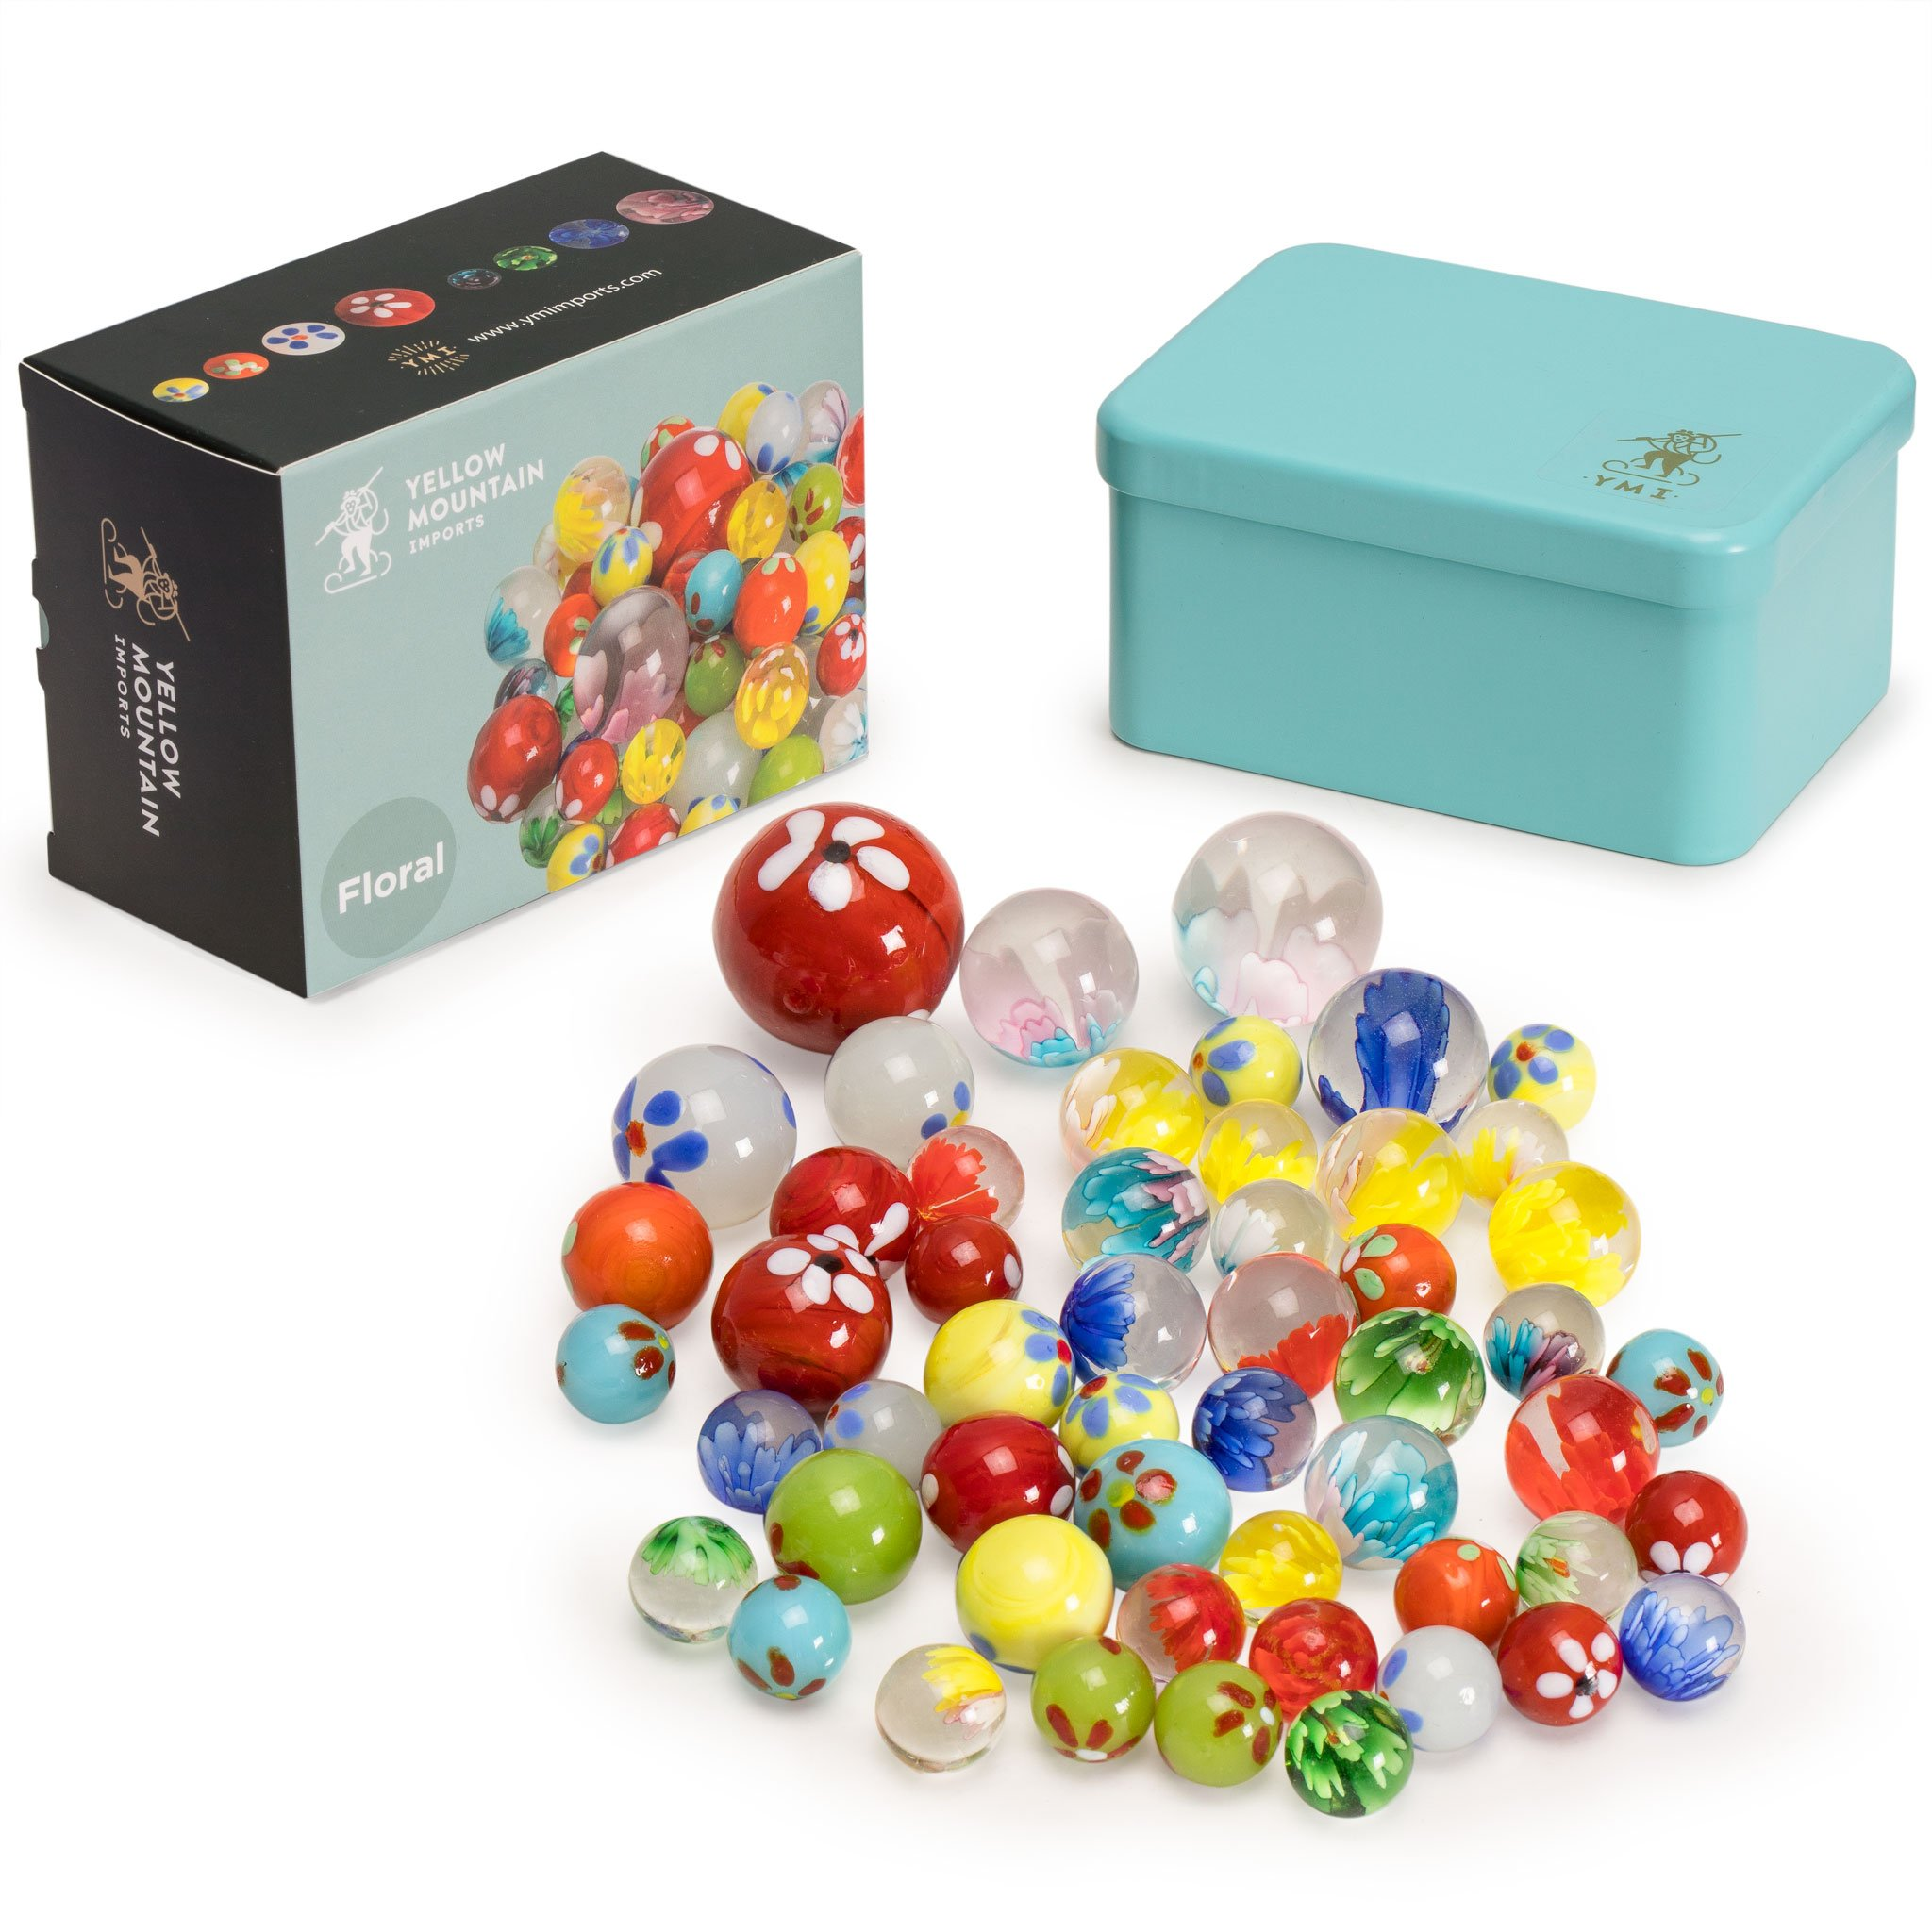 Yellow Mountain Imports Collector's Series Assorted Marbles Set in Tin Box, Floral by Yellow Mountain Imports